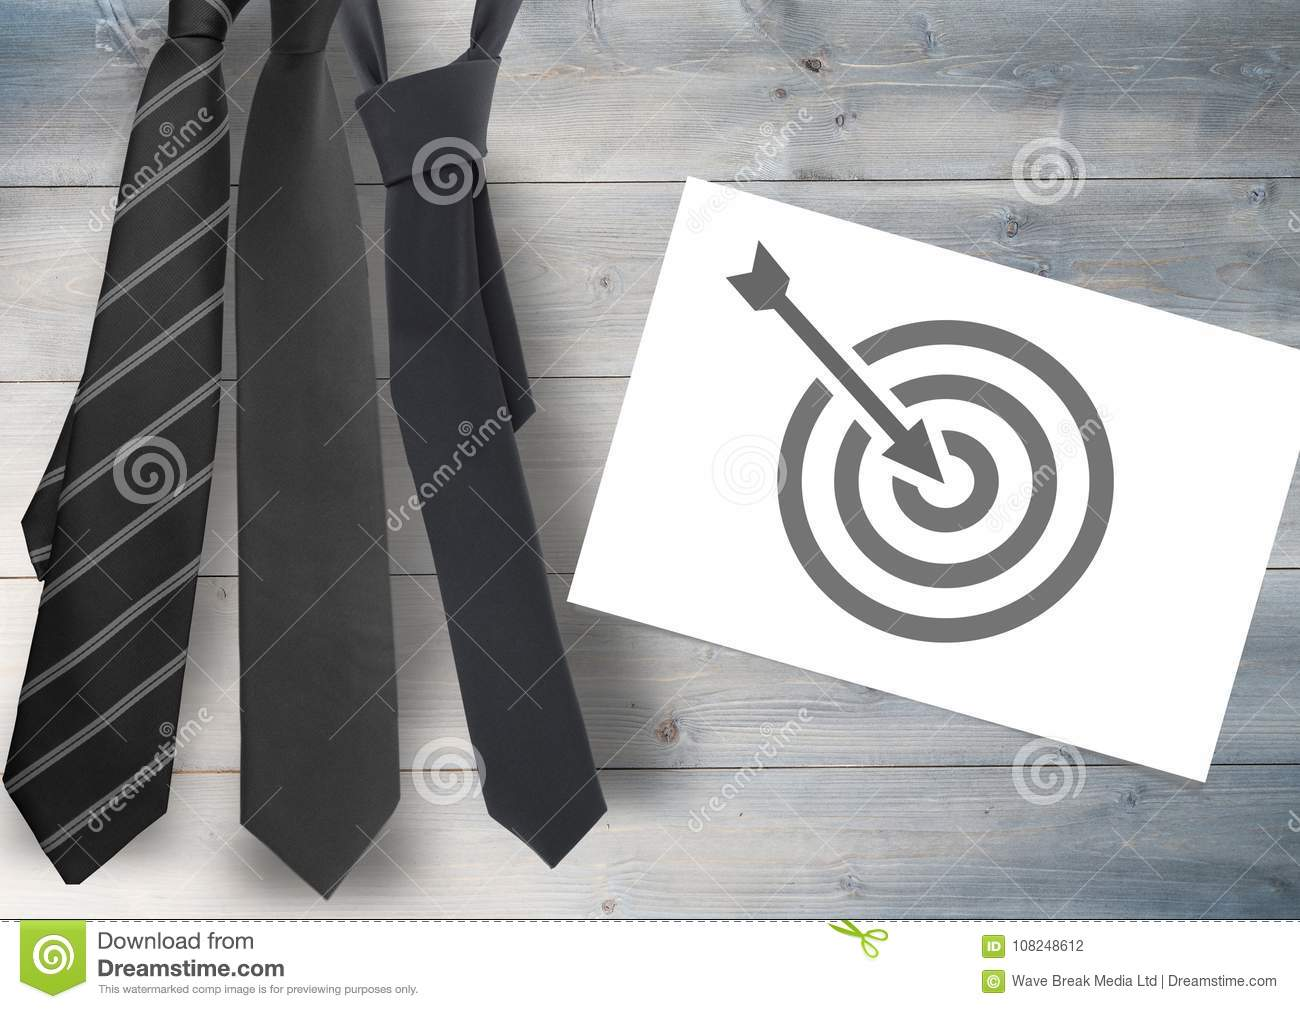 Business Target Icon On White Card With Tie\'s Stock Photo - Image of ...